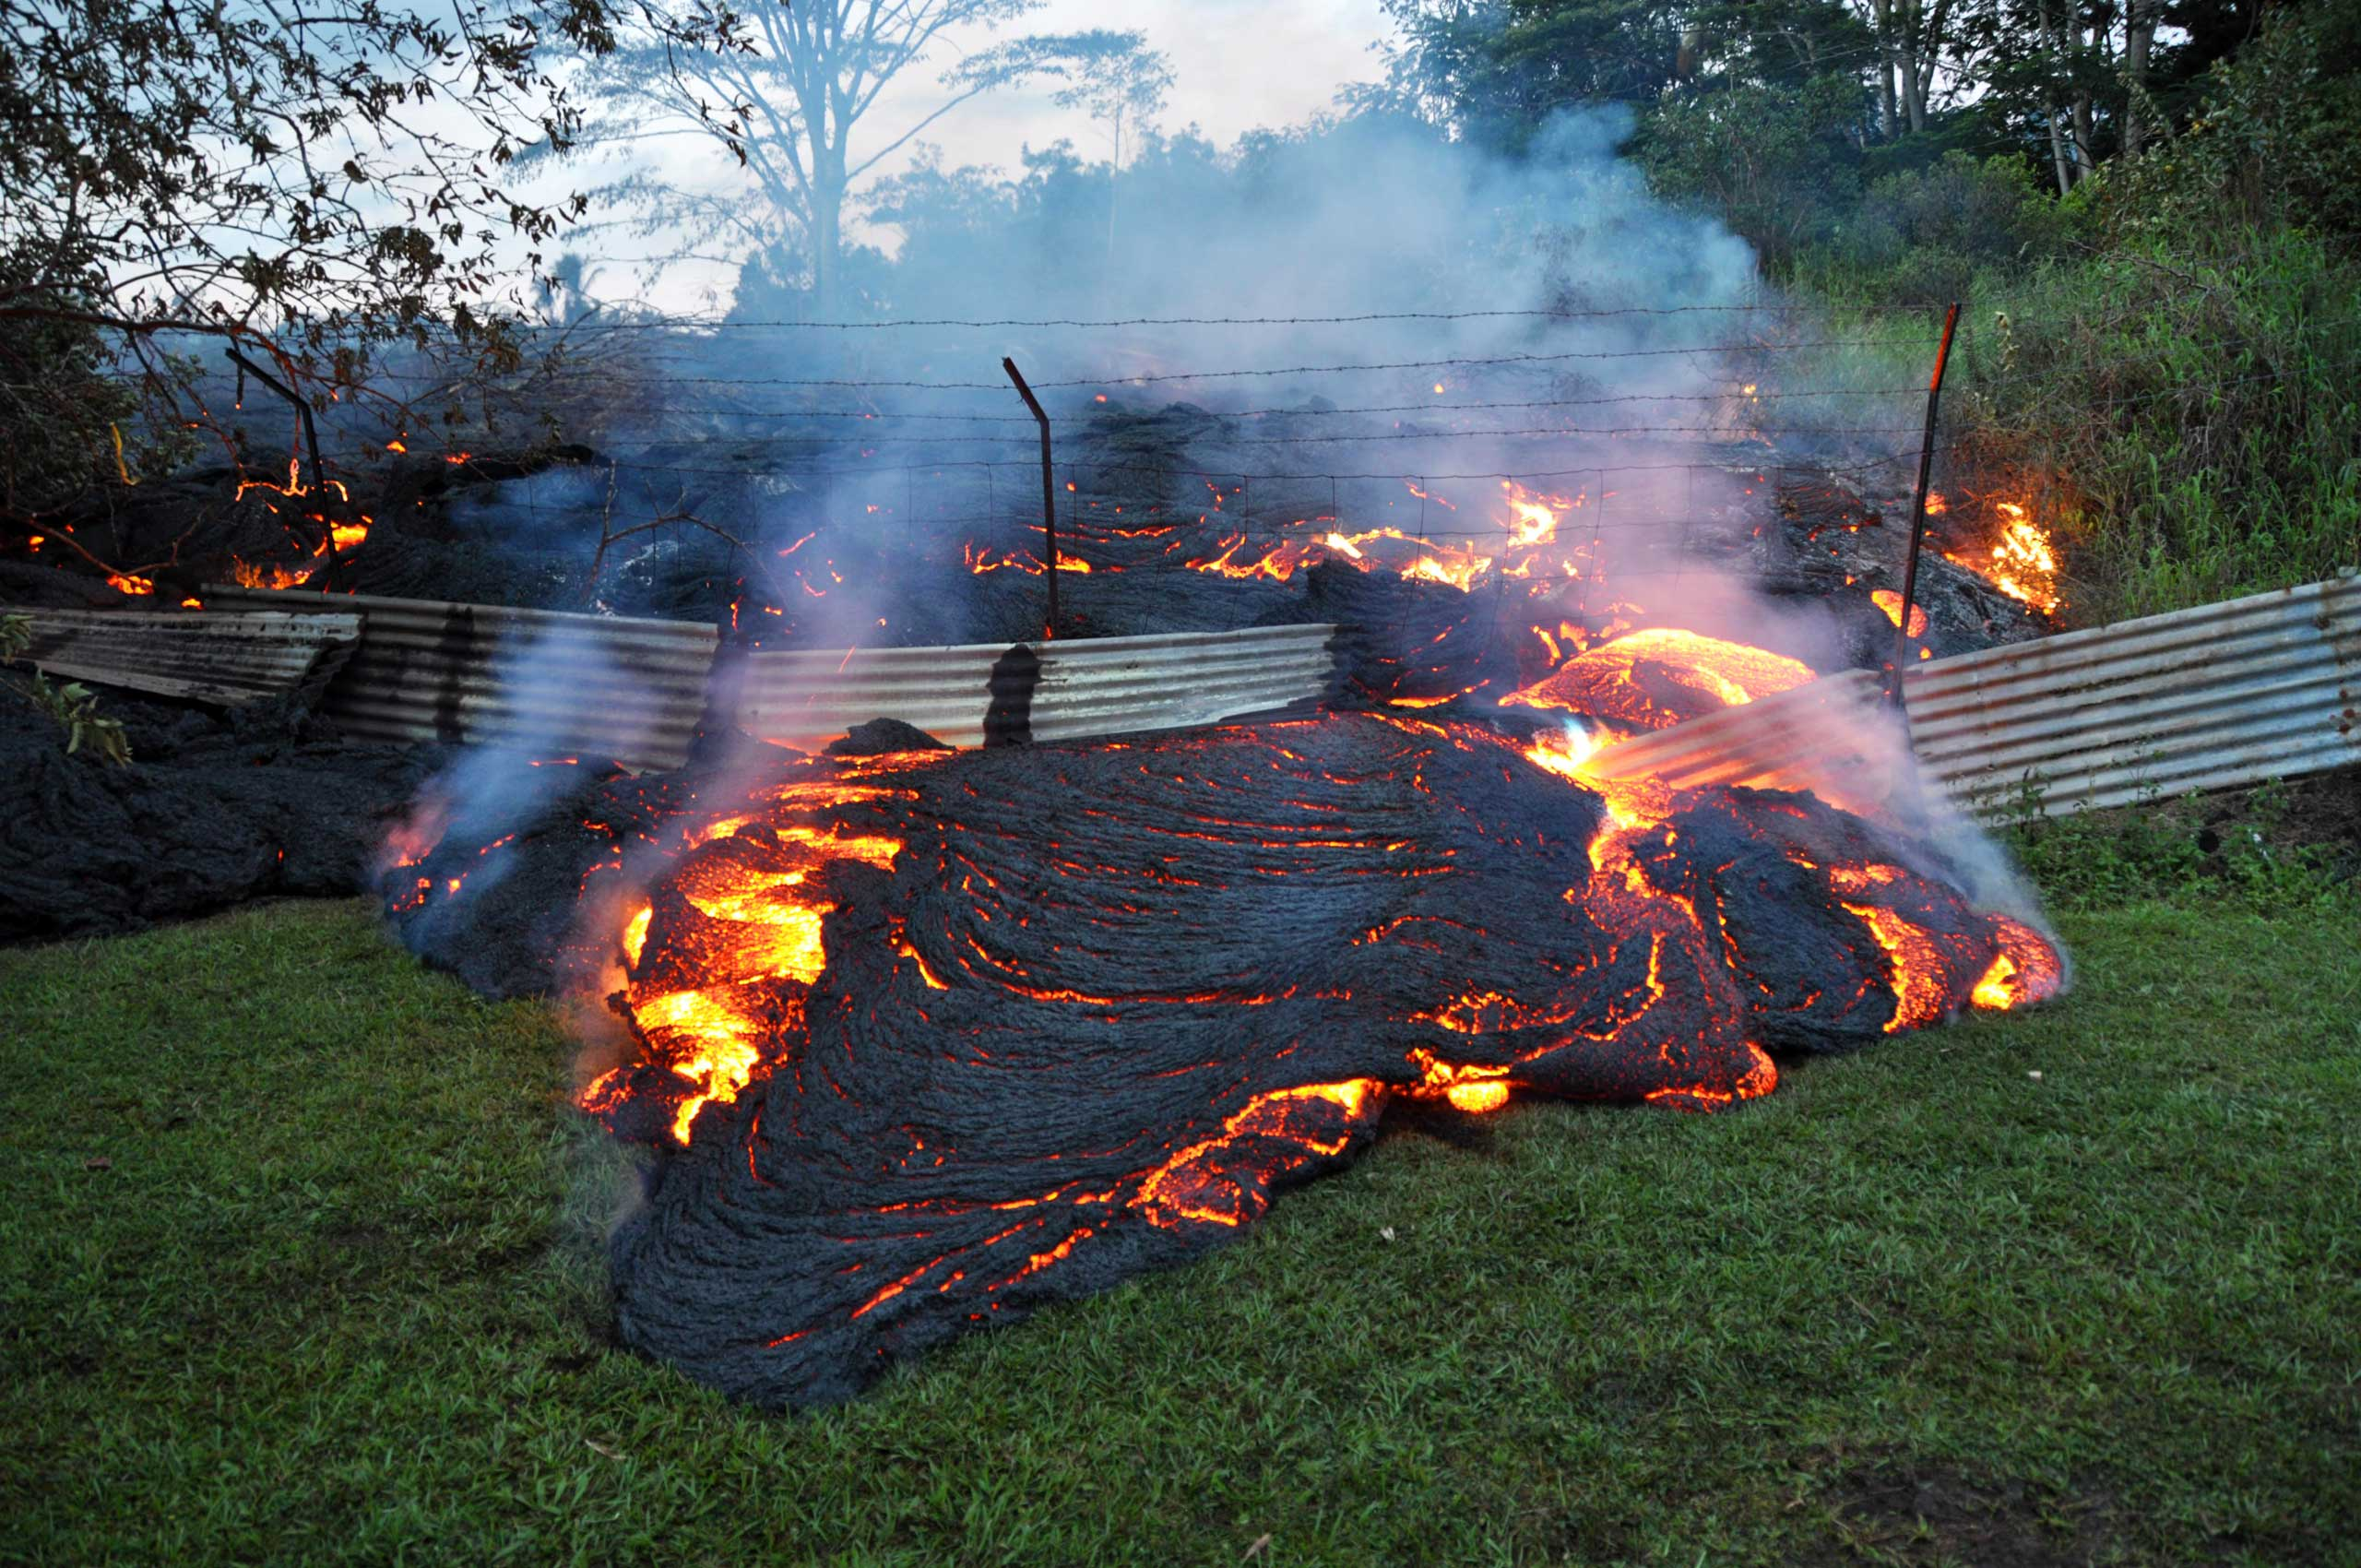 <b>Hawaii Lava</b> Lava pushes through a fence marking a property boundary above the town of Pahoa on the Big Island of Hawaii, Oct. 28, 2014.